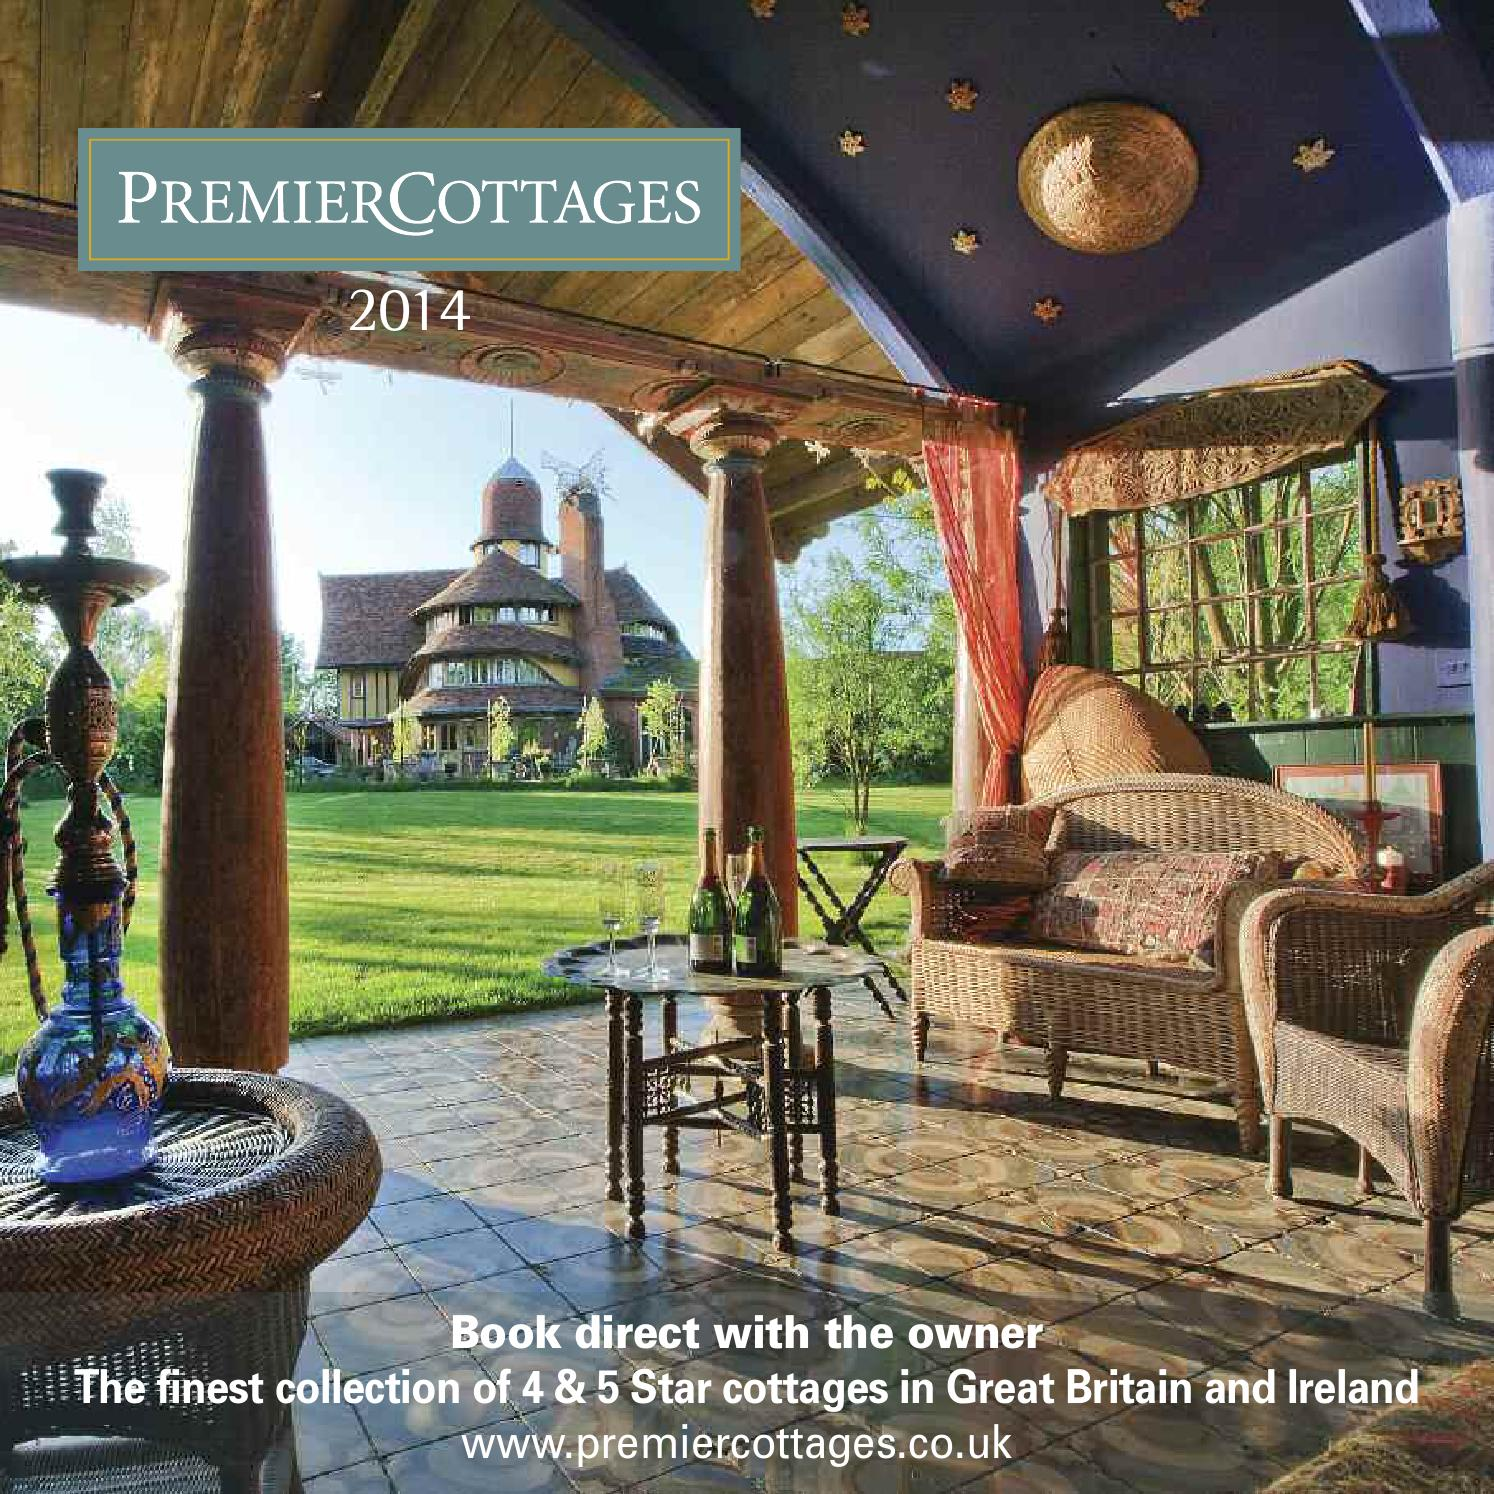 Issuu Premier Cottages Brochure 2014 By Web Admin